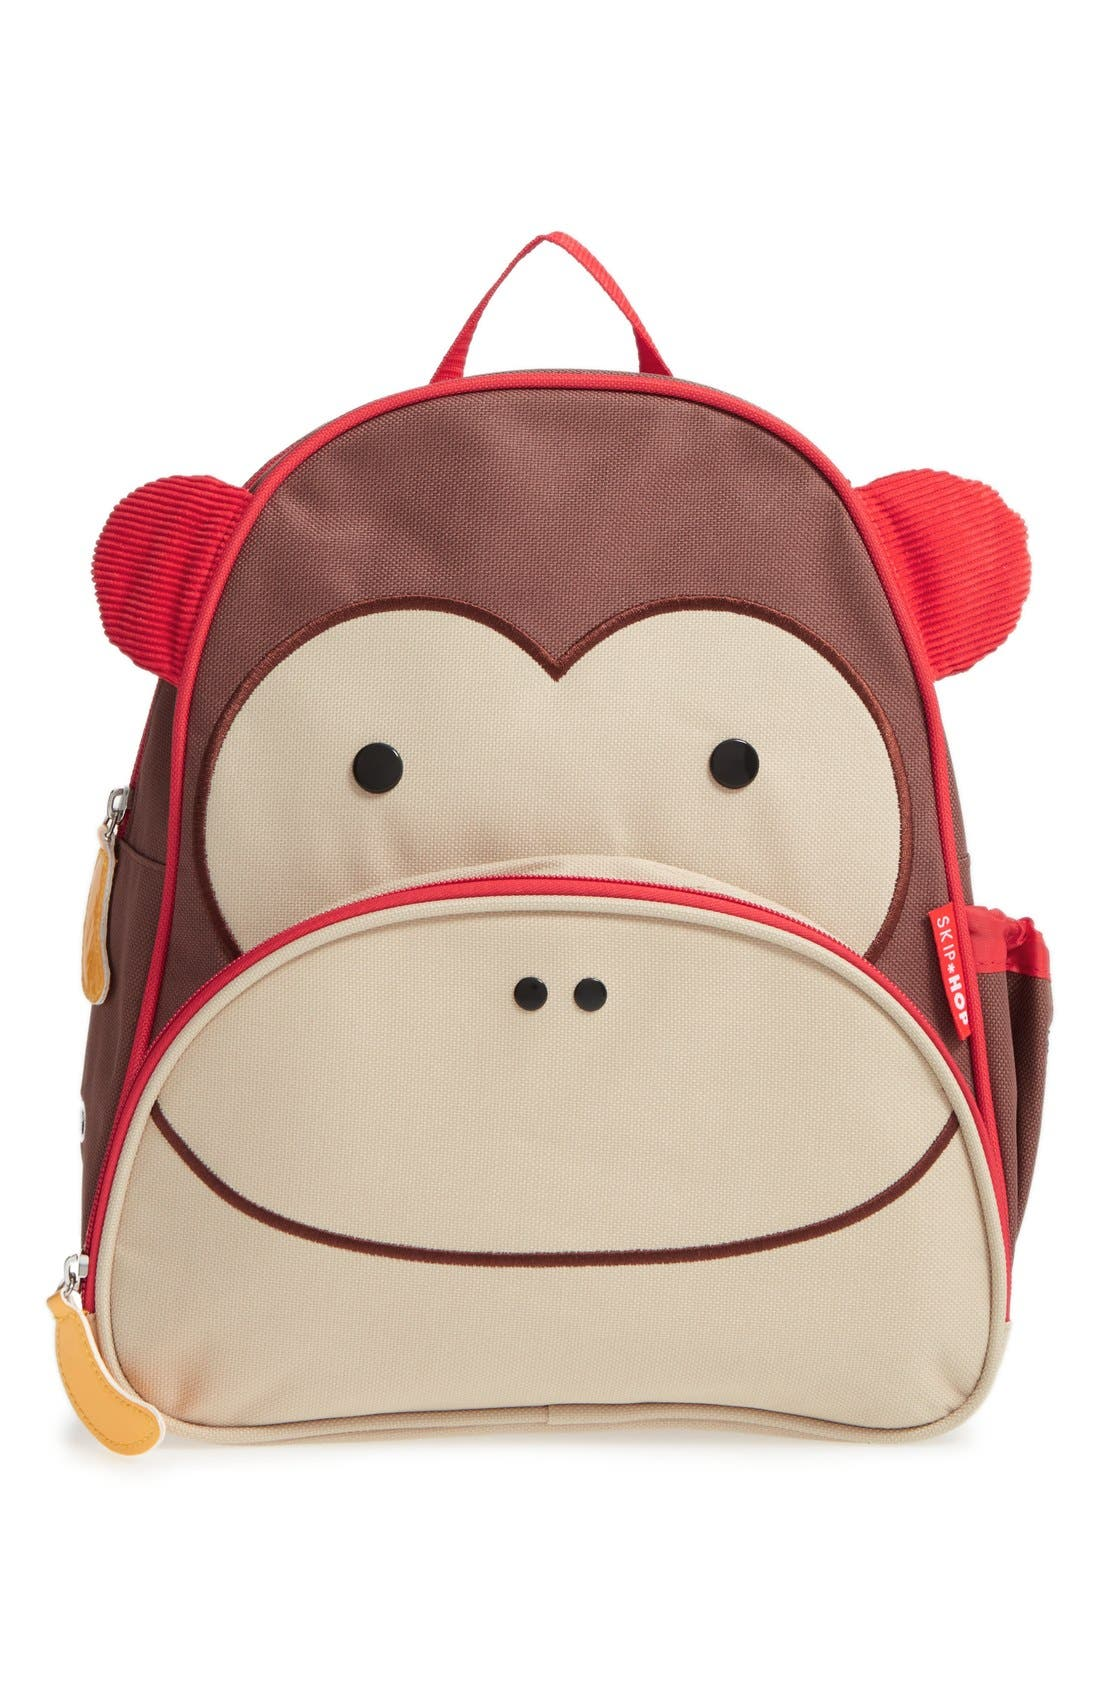 Zoo Pack Backpack,                             Main thumbnail 1, color,                             BROWN